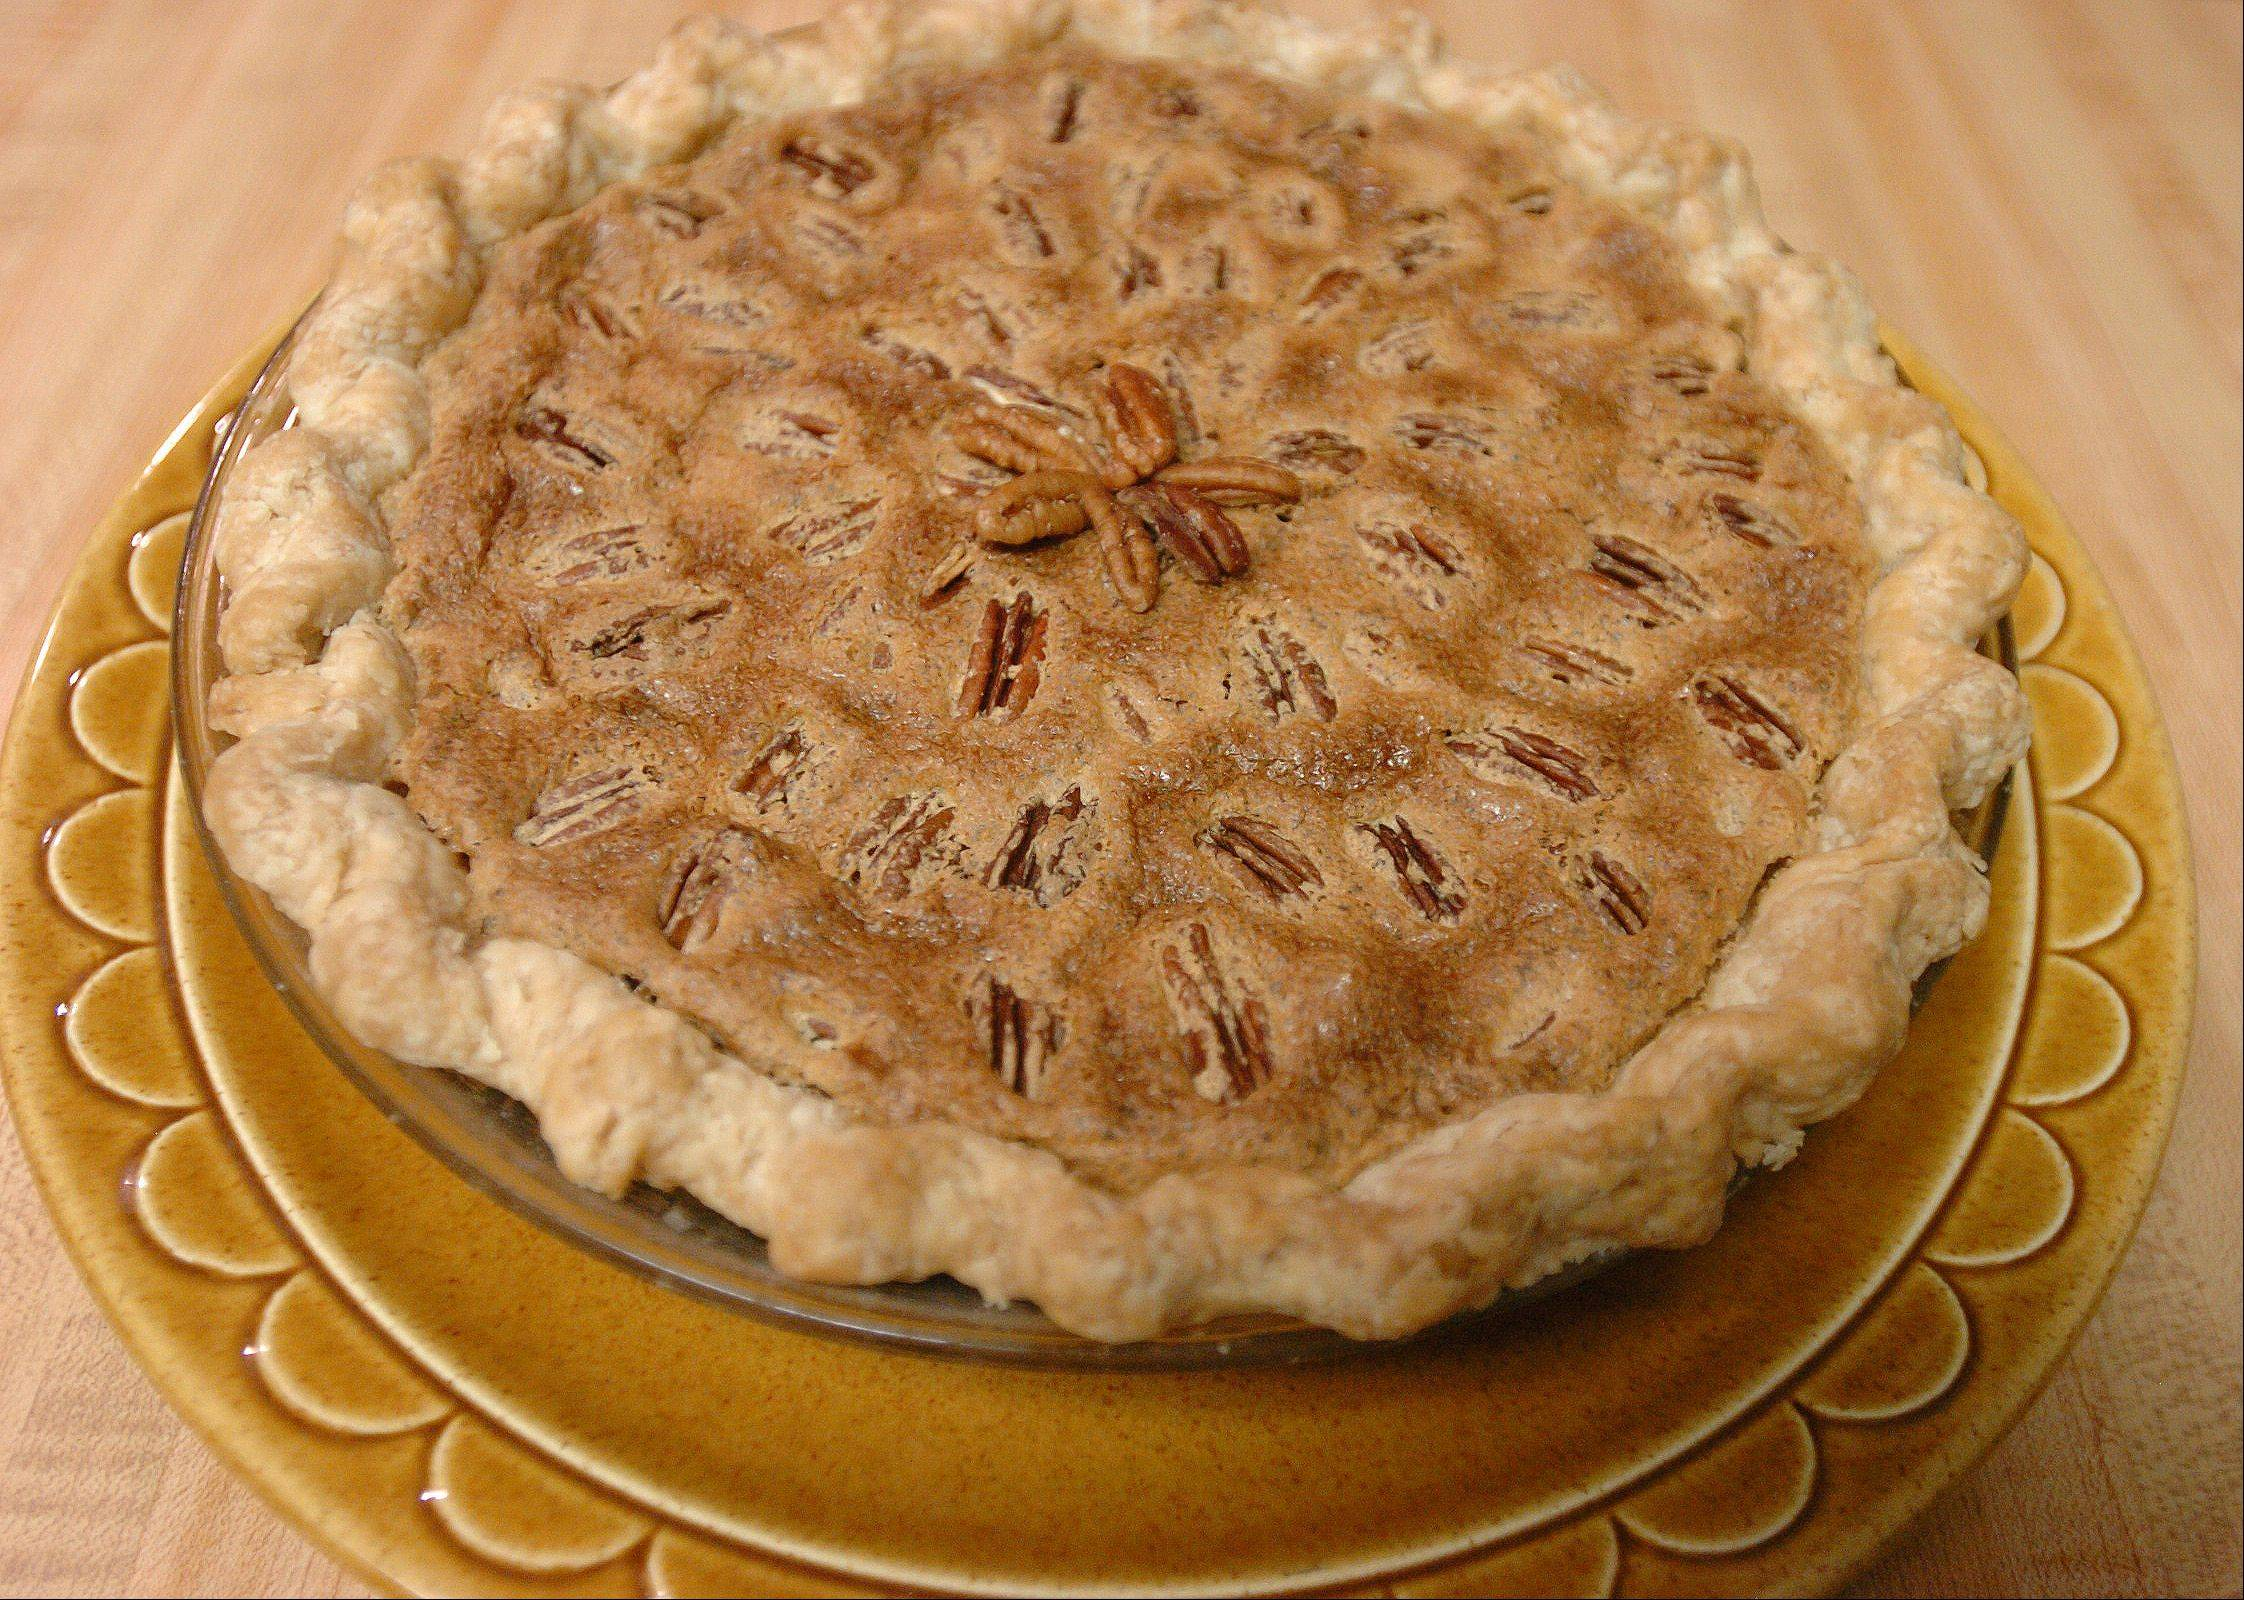 A pecan pie without corn syrup? Oh, my!